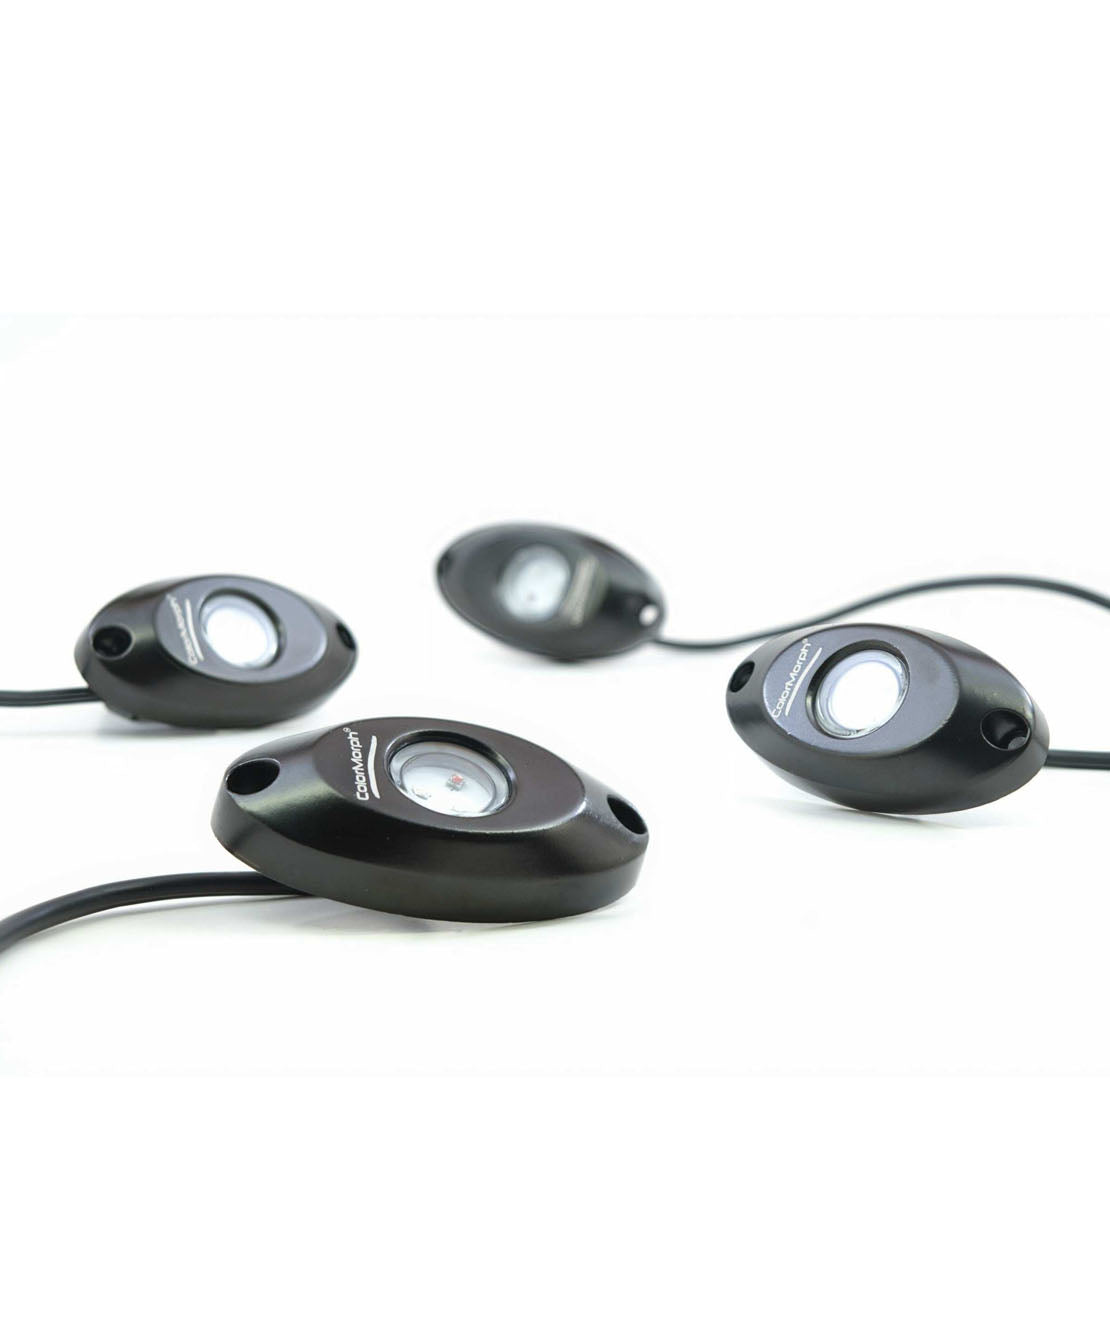 COLORMORPH RGB LED ROCK LIGHT POD KIT